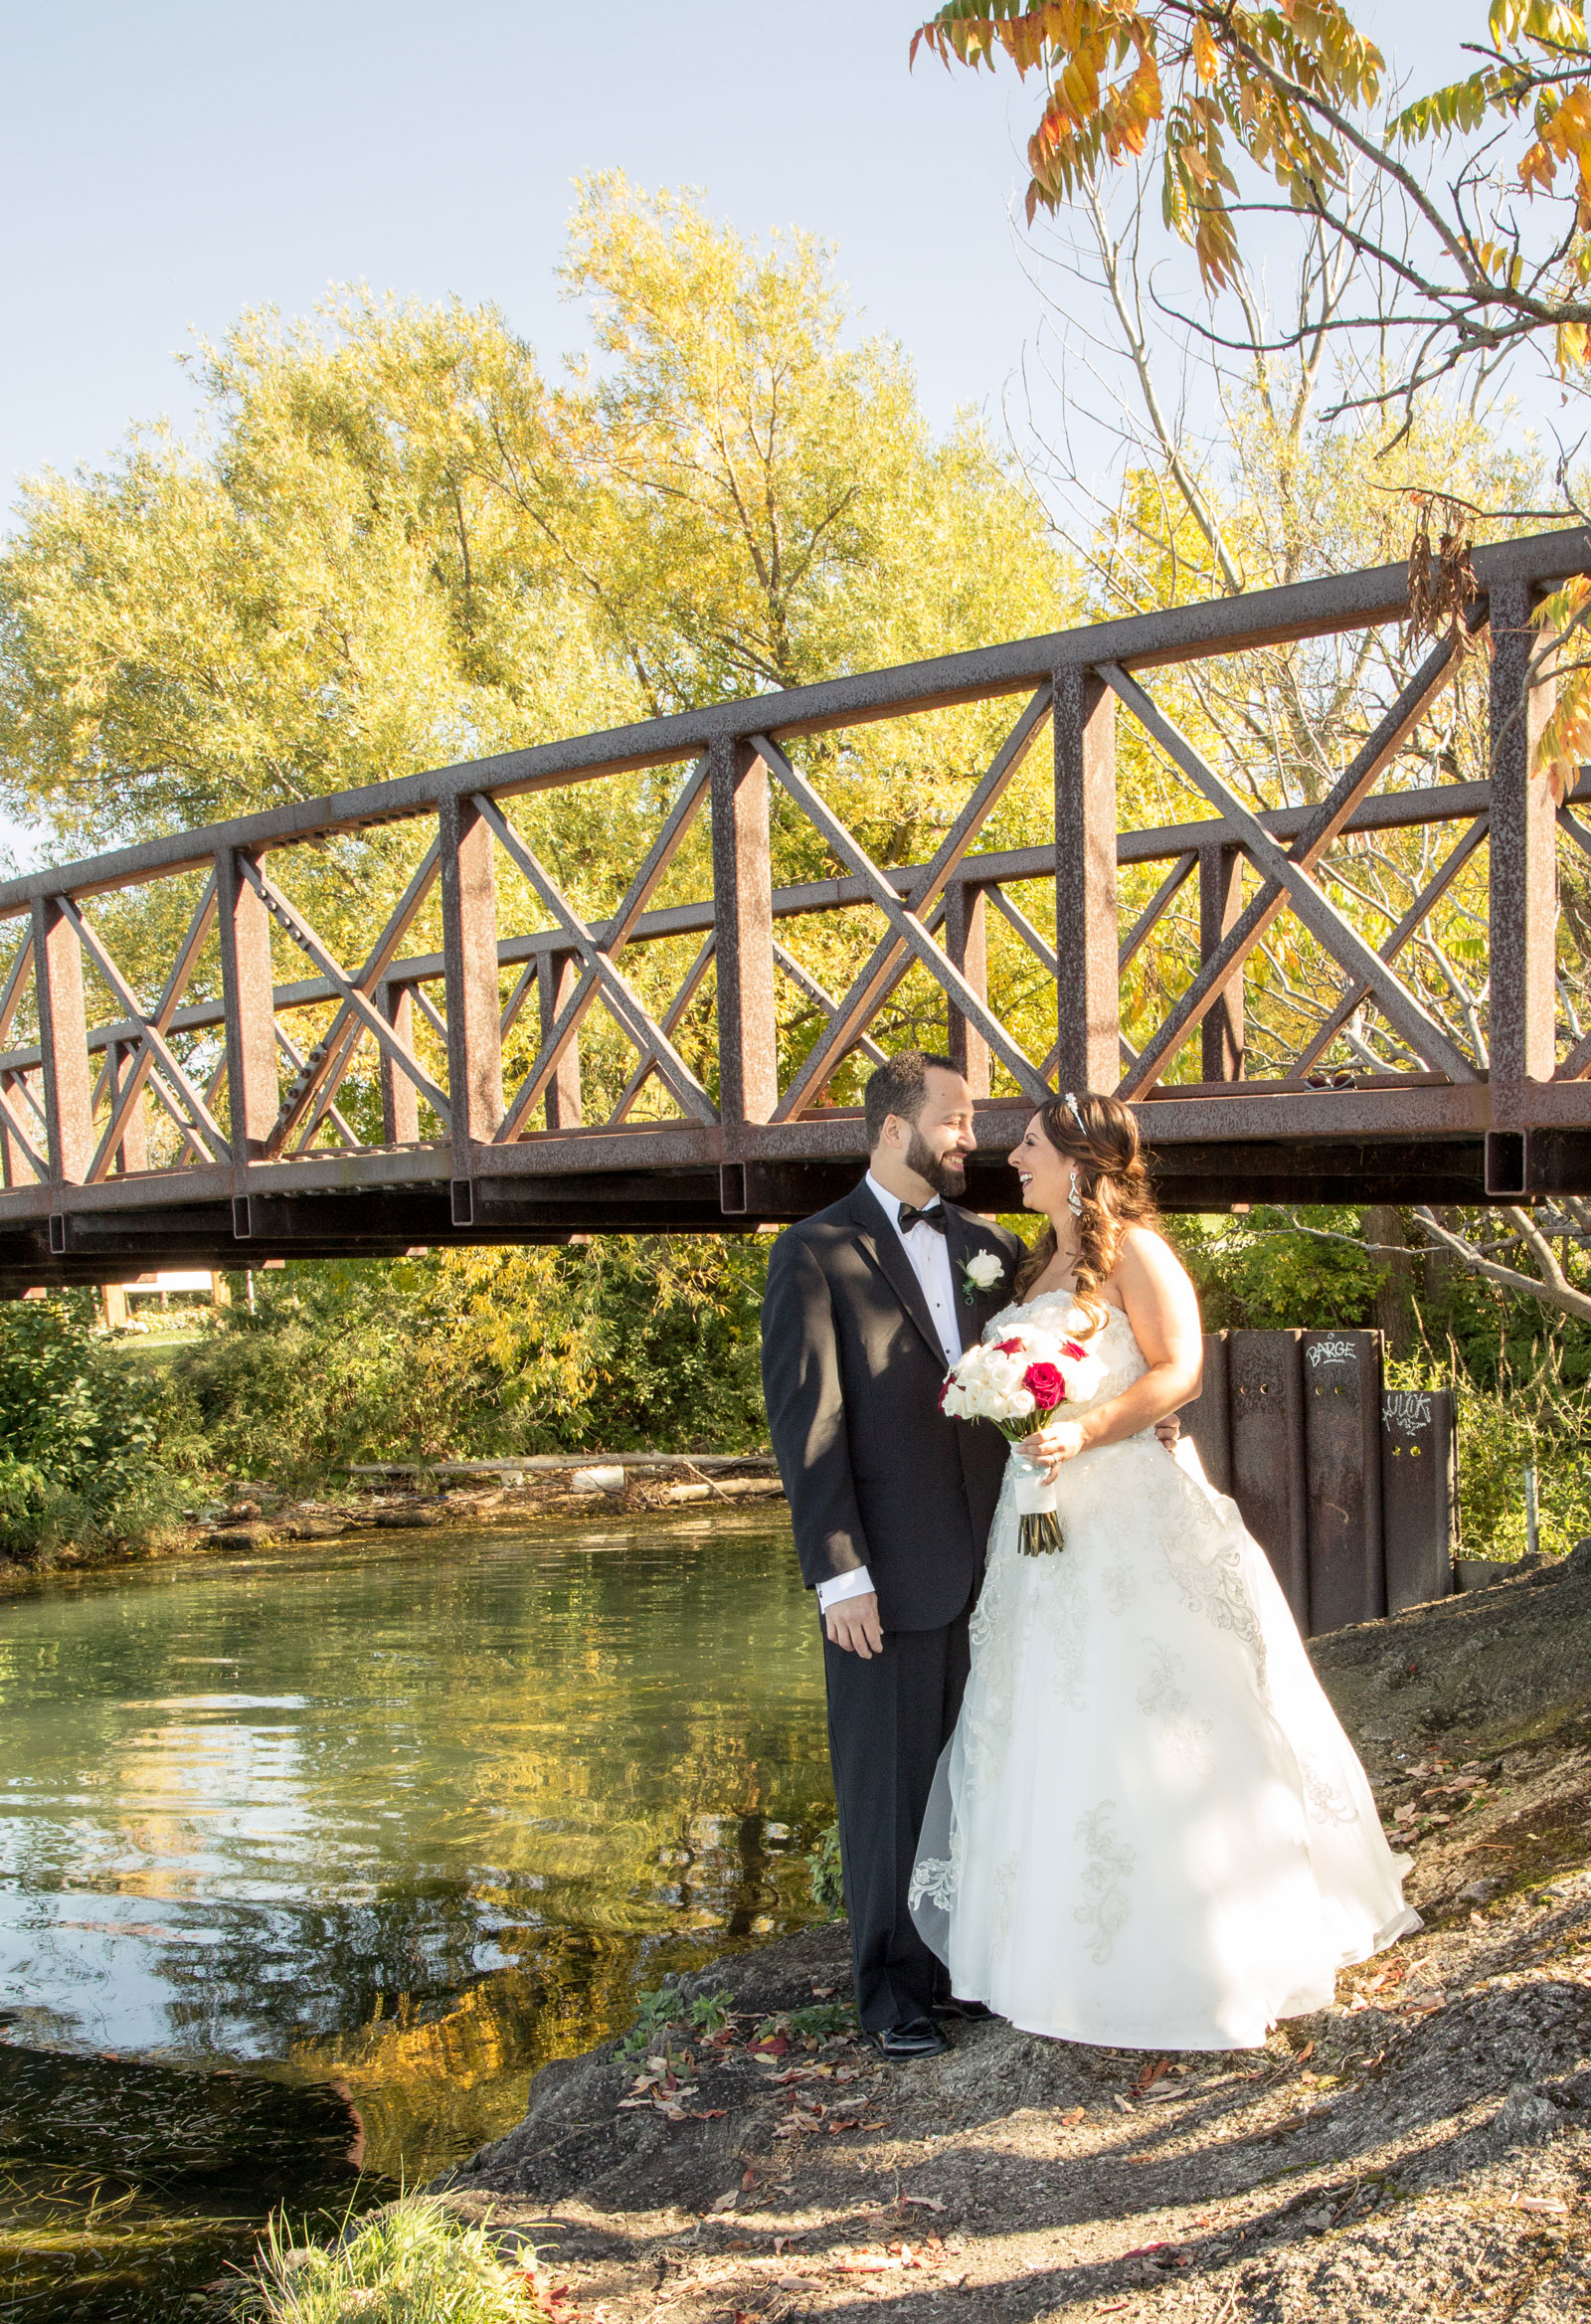 Lackawanna, NY Wedding bride and groom by a bridge